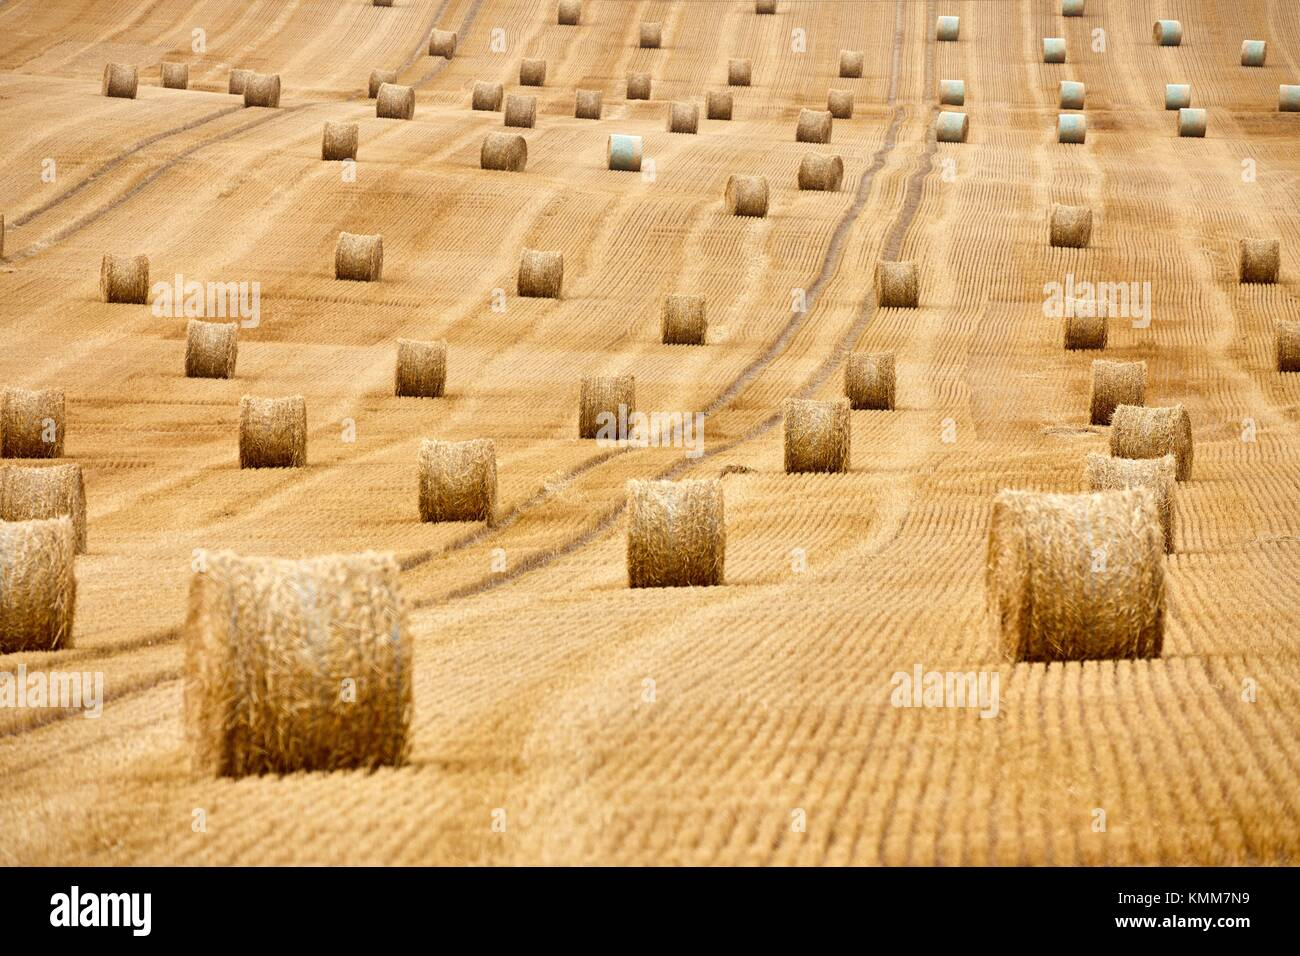 Field of cereal, bales of straw, stubble, near Auxerre, Yonne, Burgundy, Bourgogne, France, Europe - Stock Image